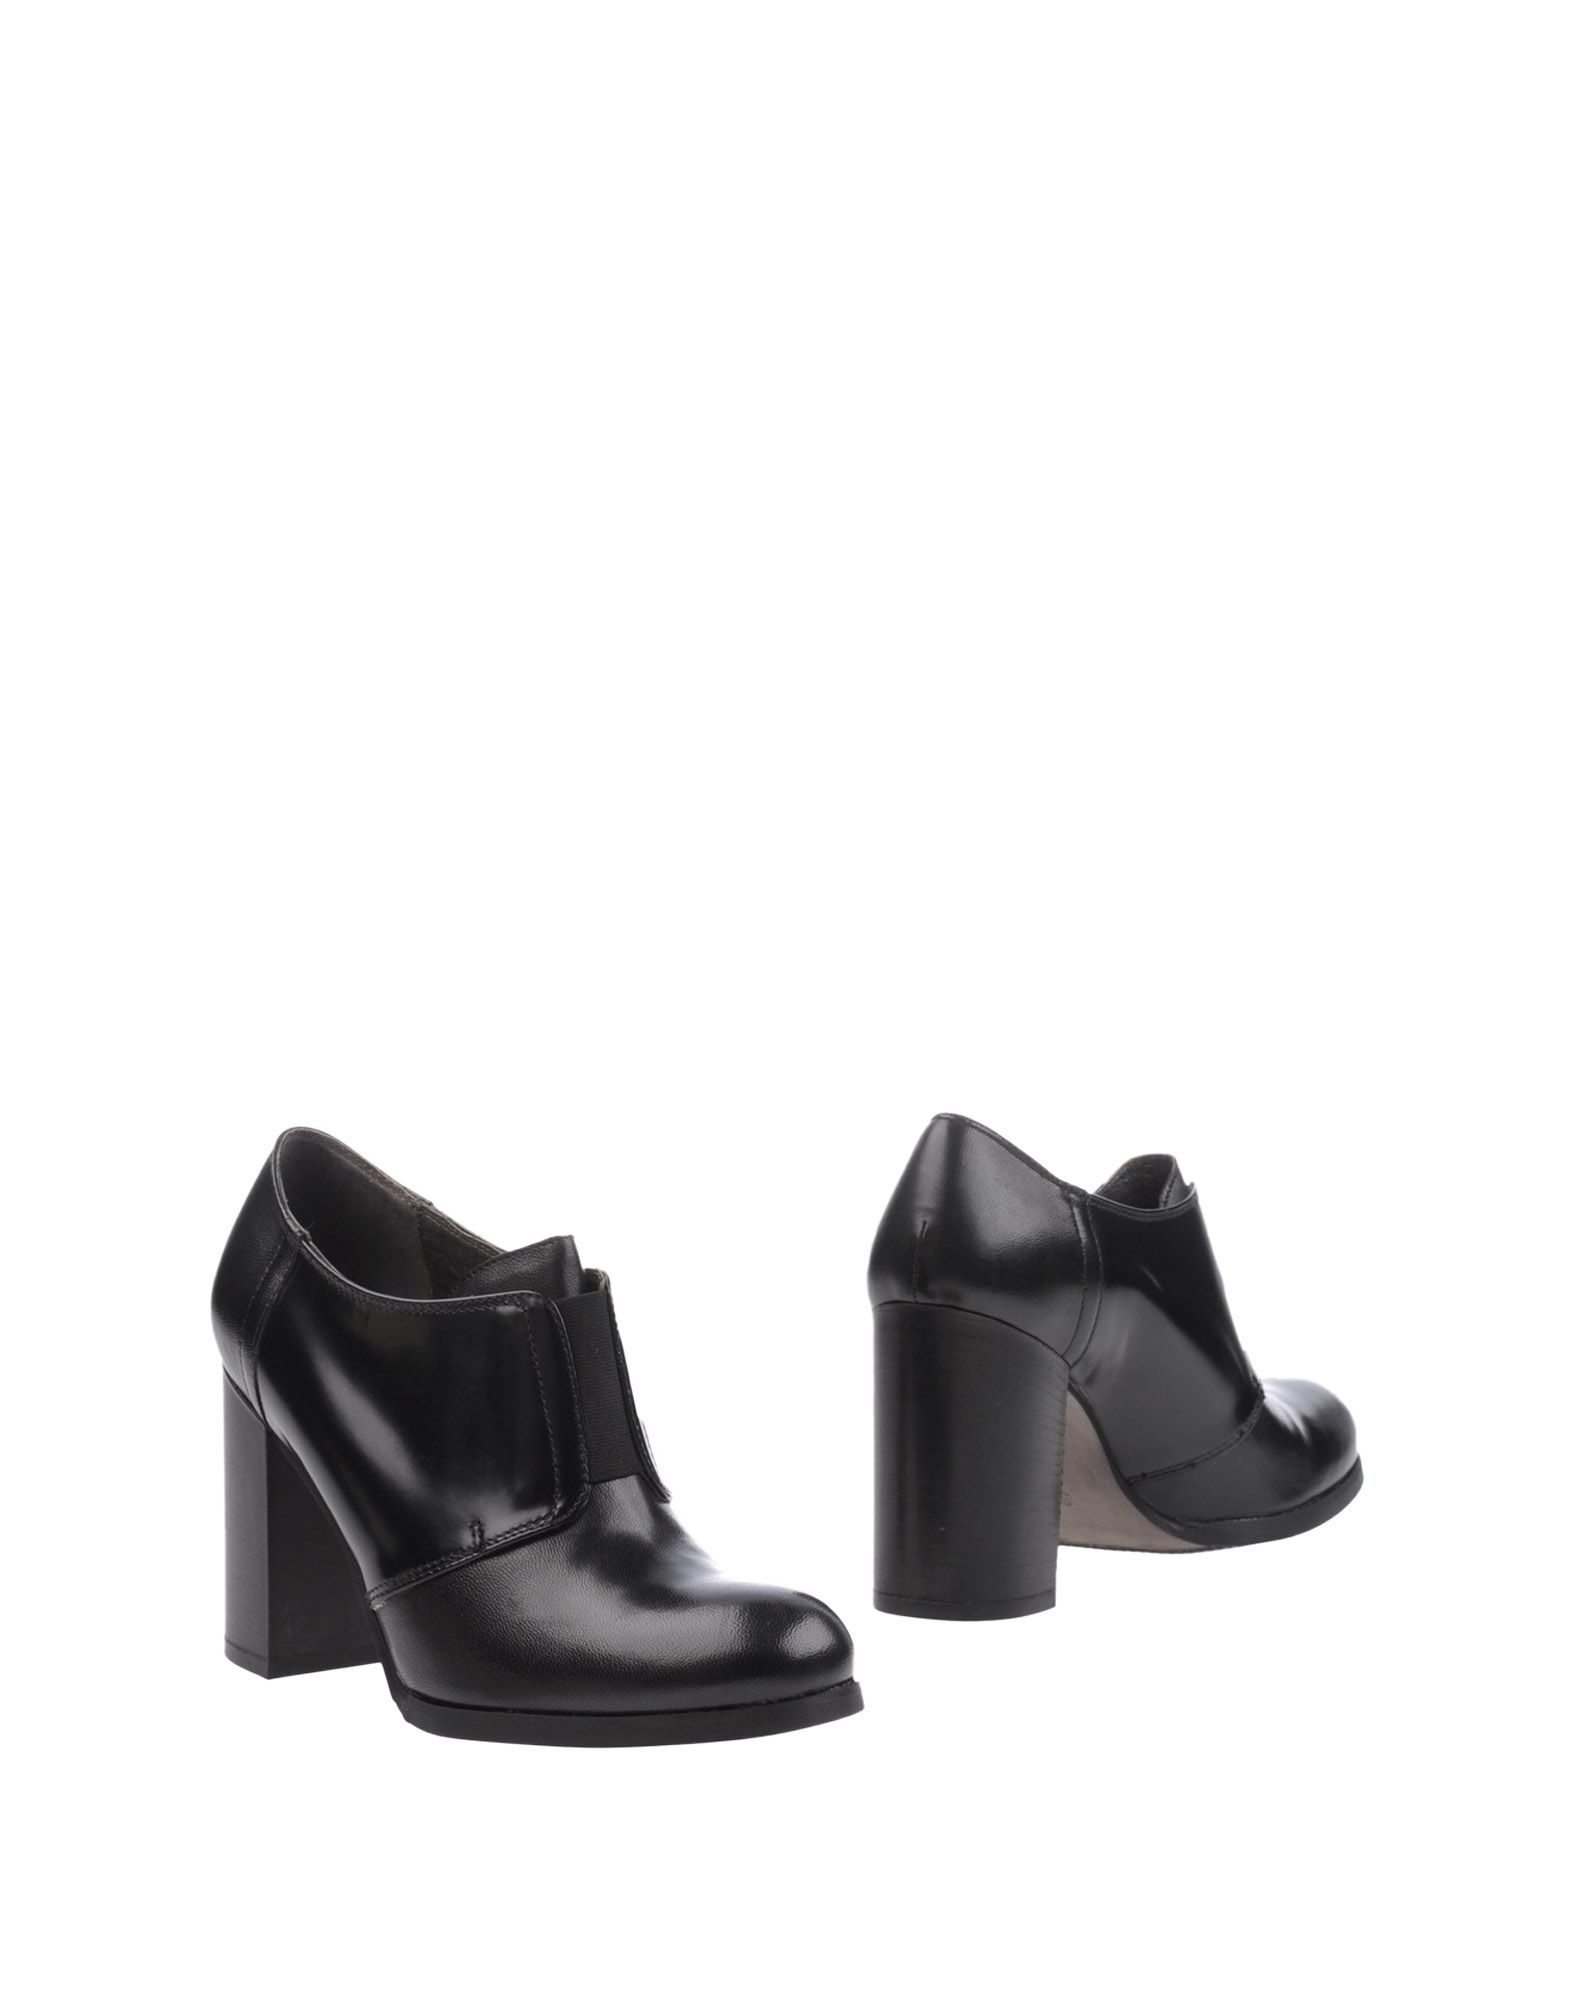 Paola Ferri Ankle Boot Ankle - Women Paola Ferri Ankle Boot Boots online on  Australia - 11226722PG 2f5e0f